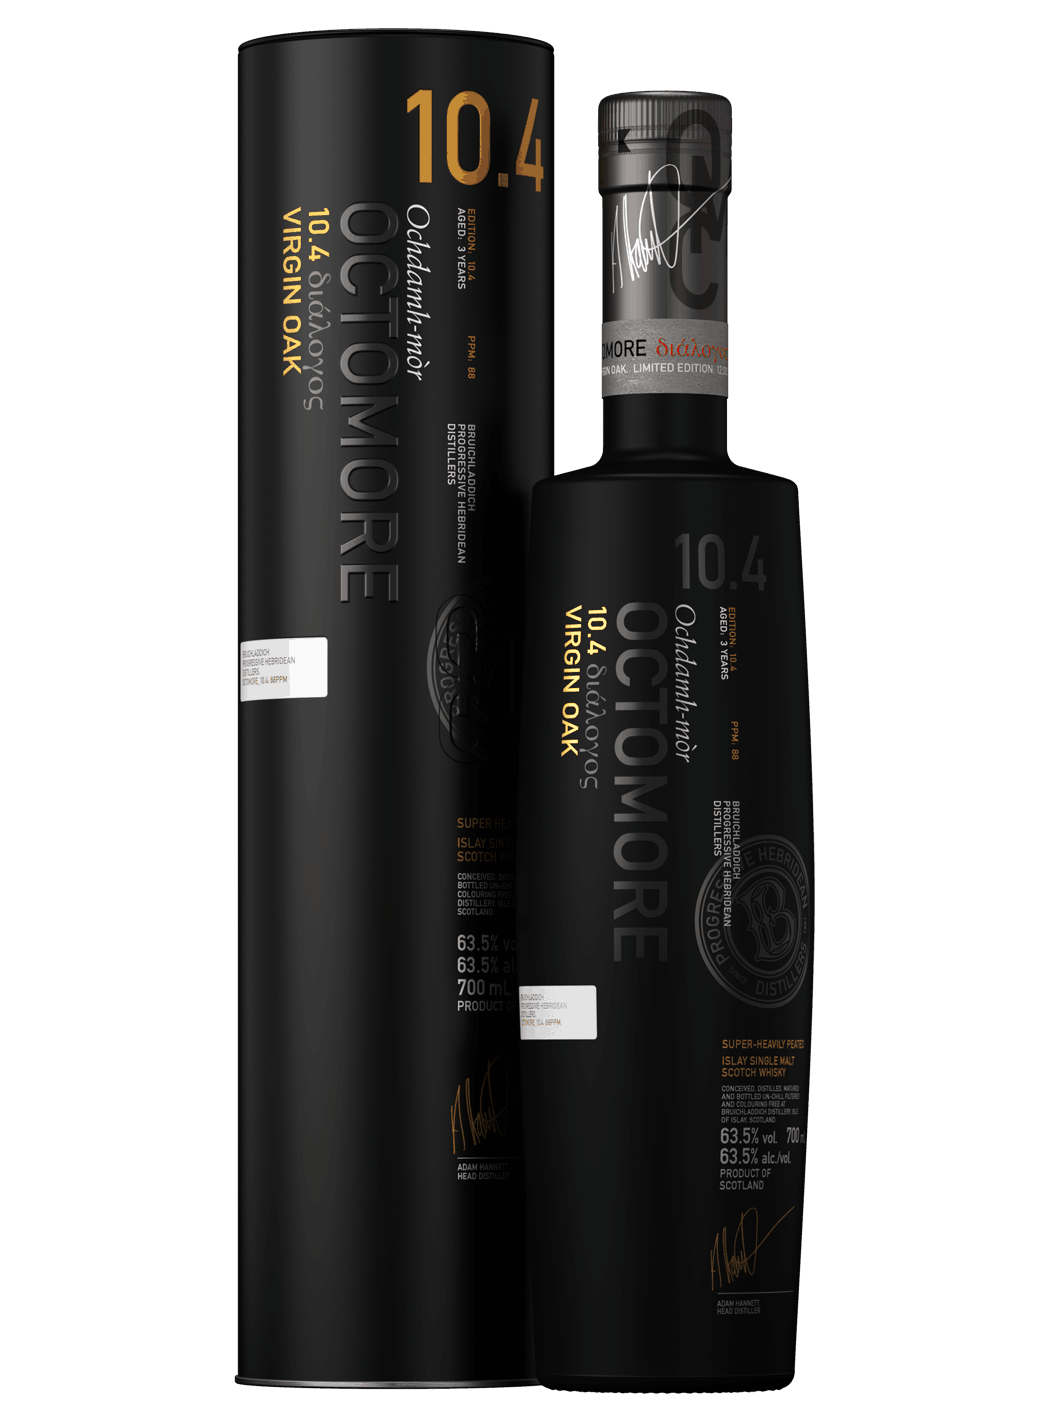 Octomore 10.4